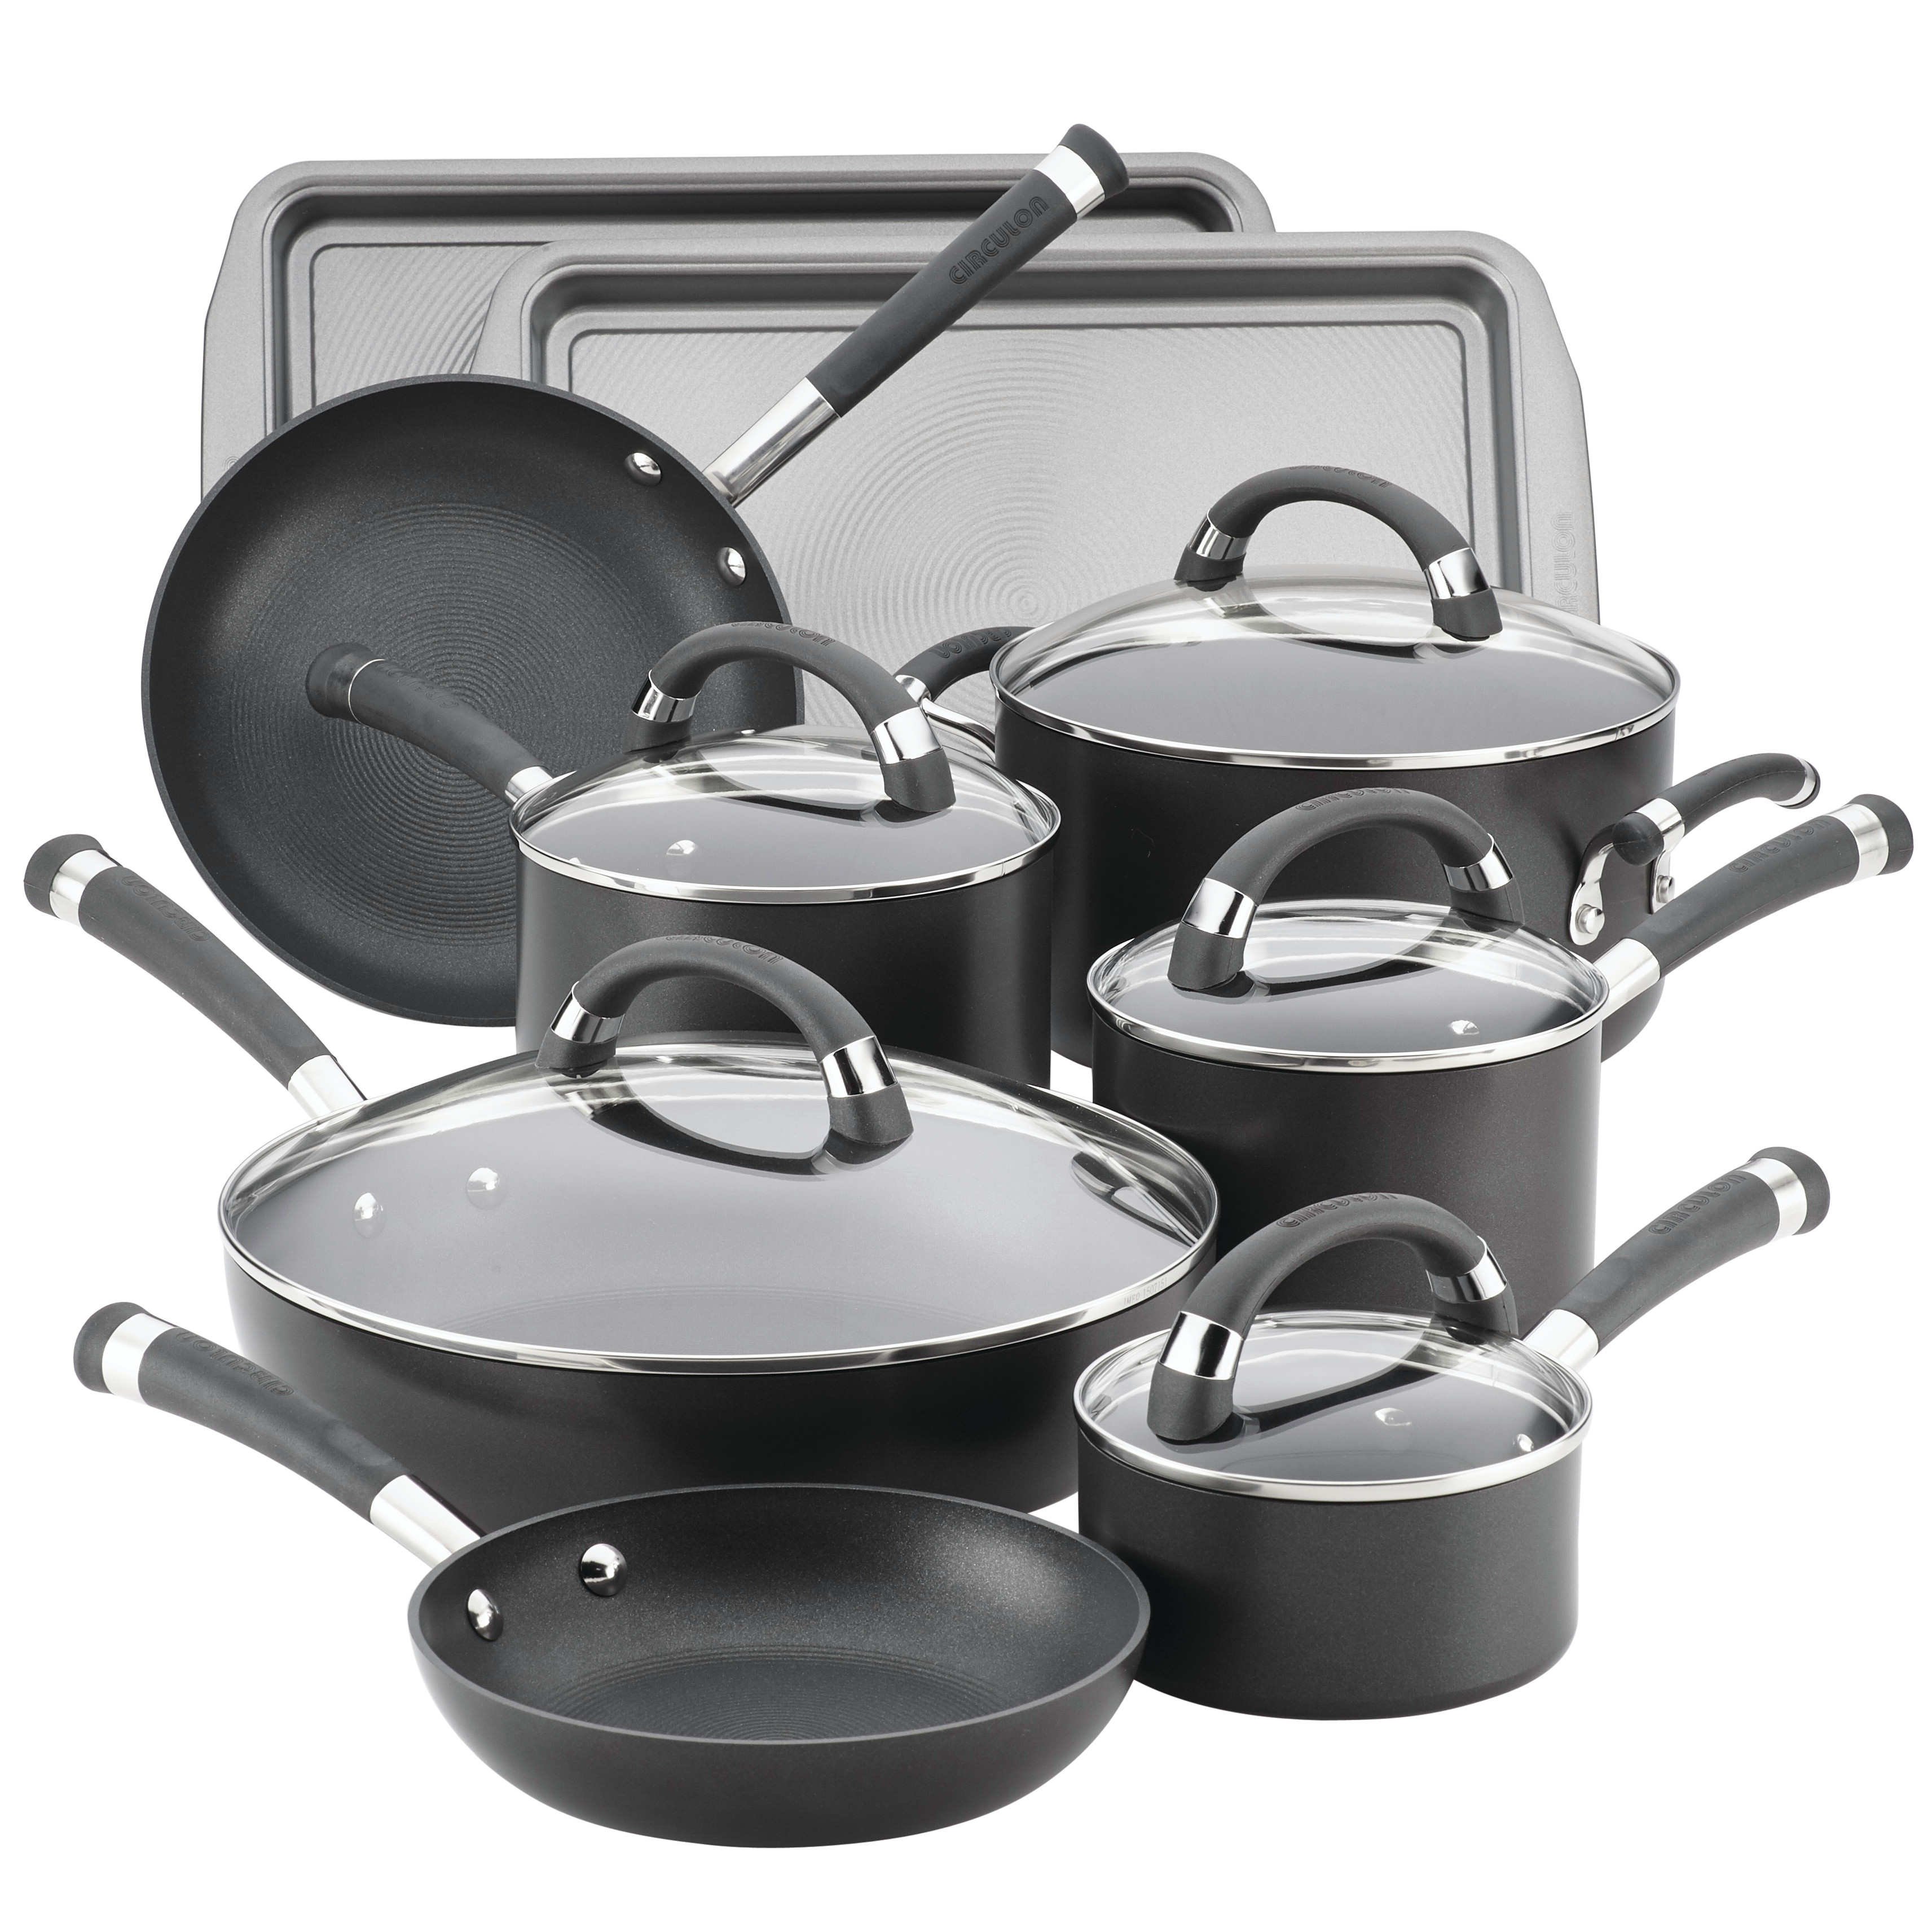 Circulon Espree Hard-Anodized Nonstick 14-Piece Cookware Set, Pewter